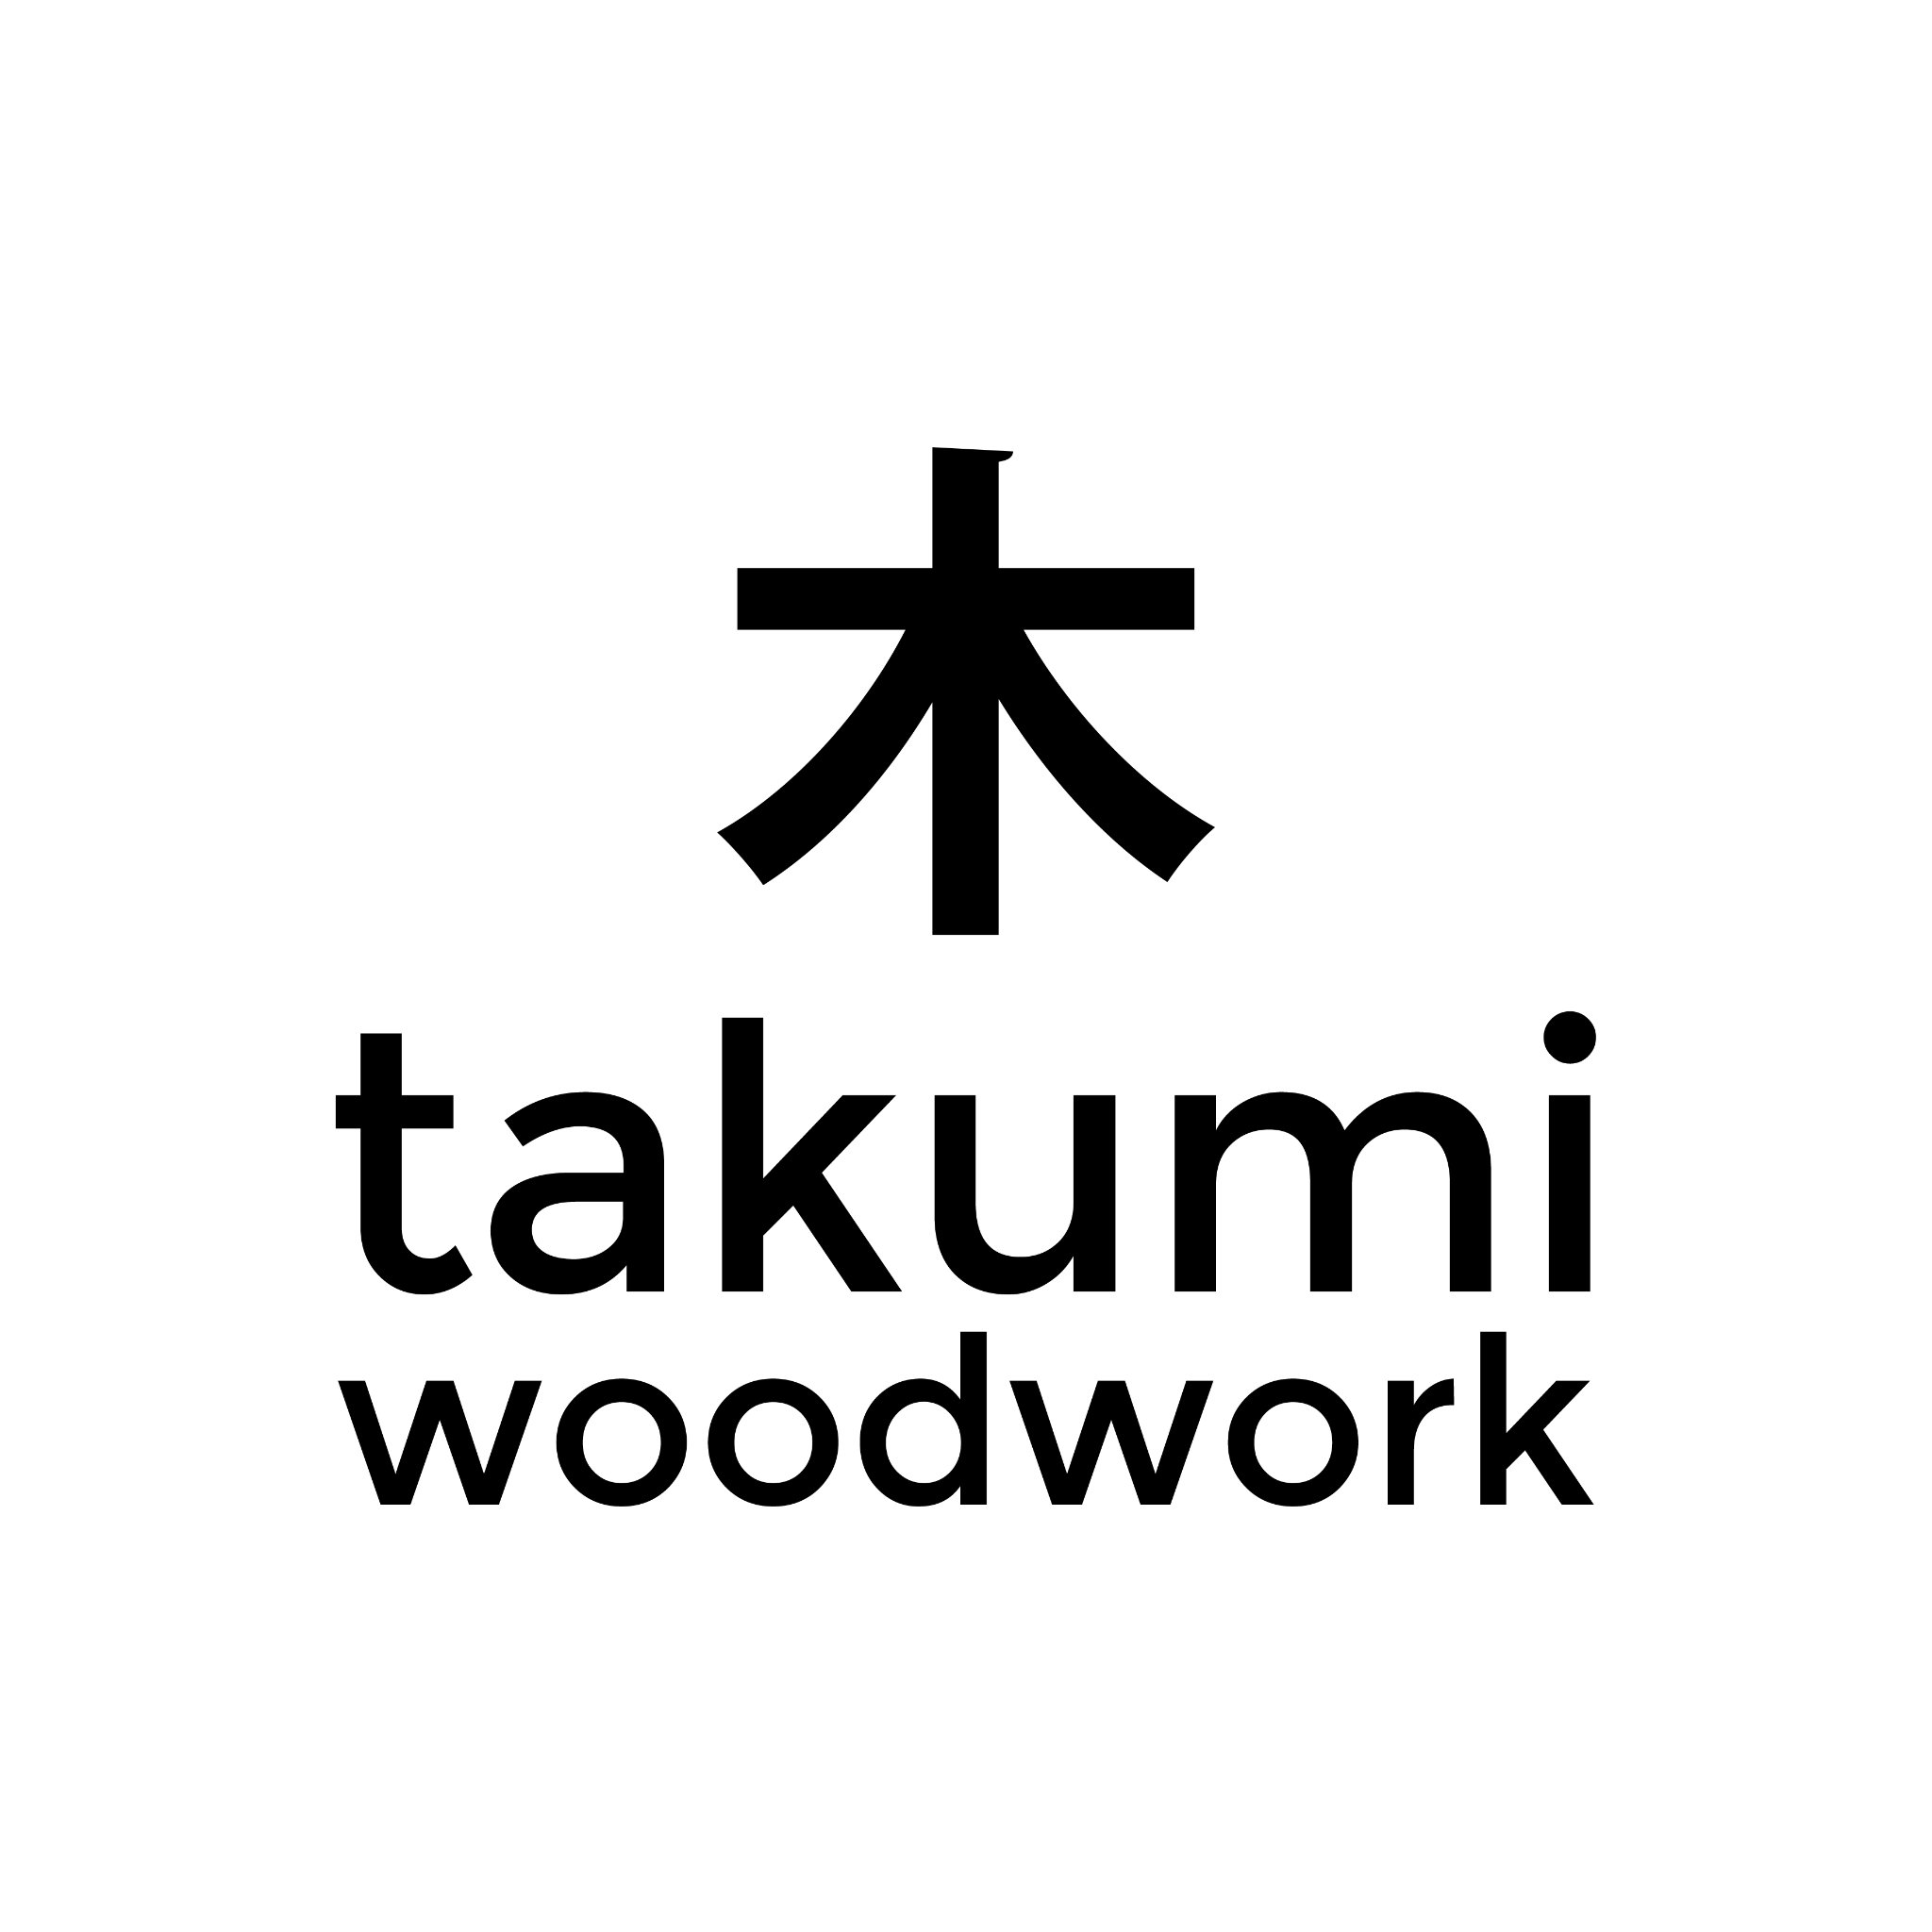 Takumi Woodwork On Twitter Xylophone Table Turned Out Alright